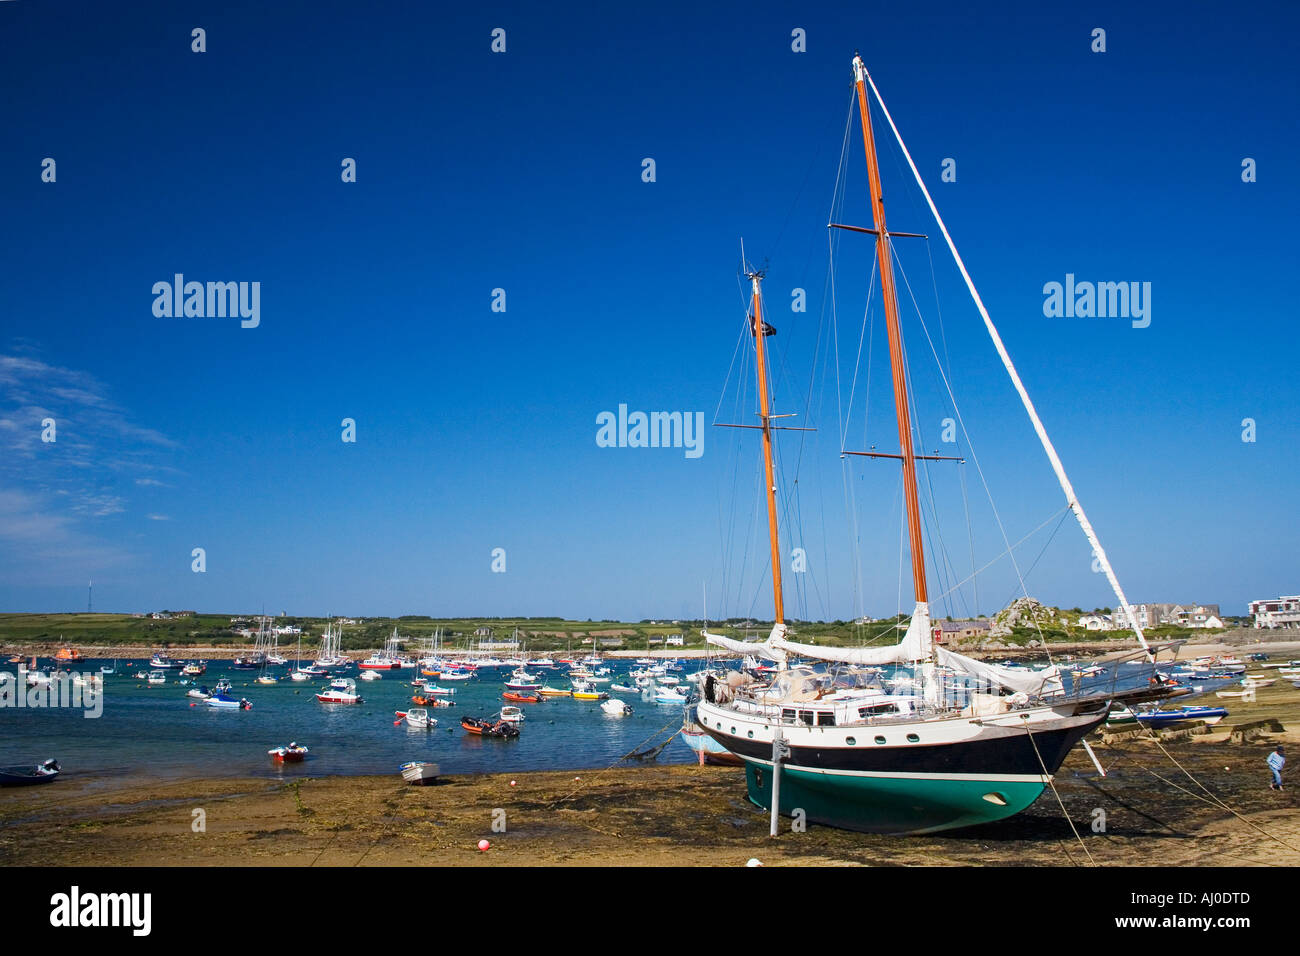 Boats and yachts in Hugh Town Harbour St Marys Isles of Scilly Cornwall  England UK United Kingdom GB Great Britain British Isle - Stock Image